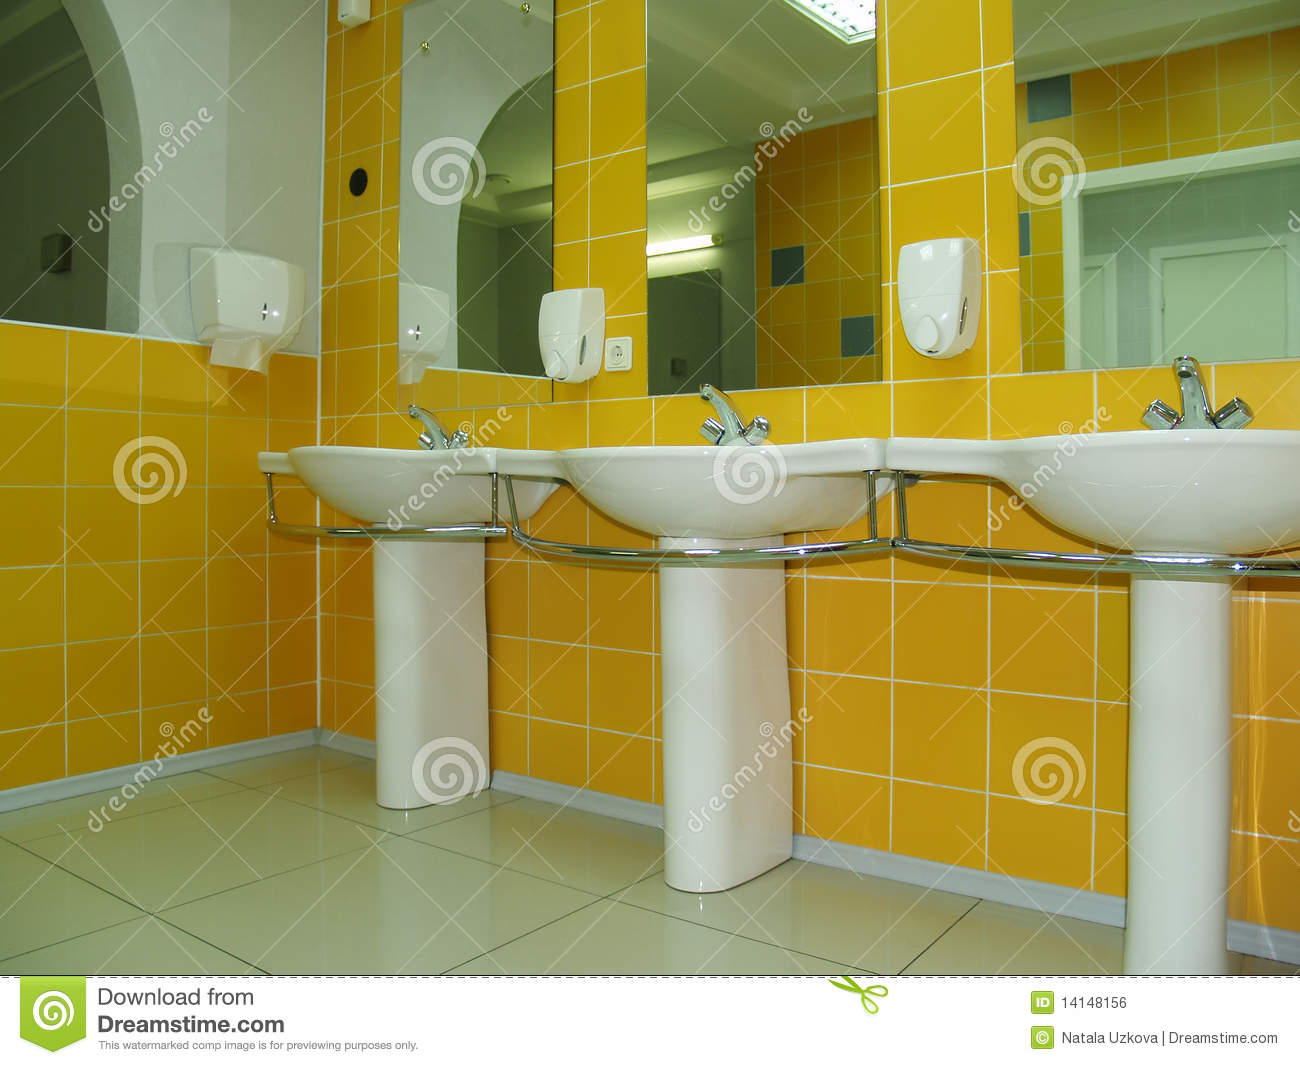 Bathroom Or Toilet With A Yellow Tile Bowls Royalty Free Stock .